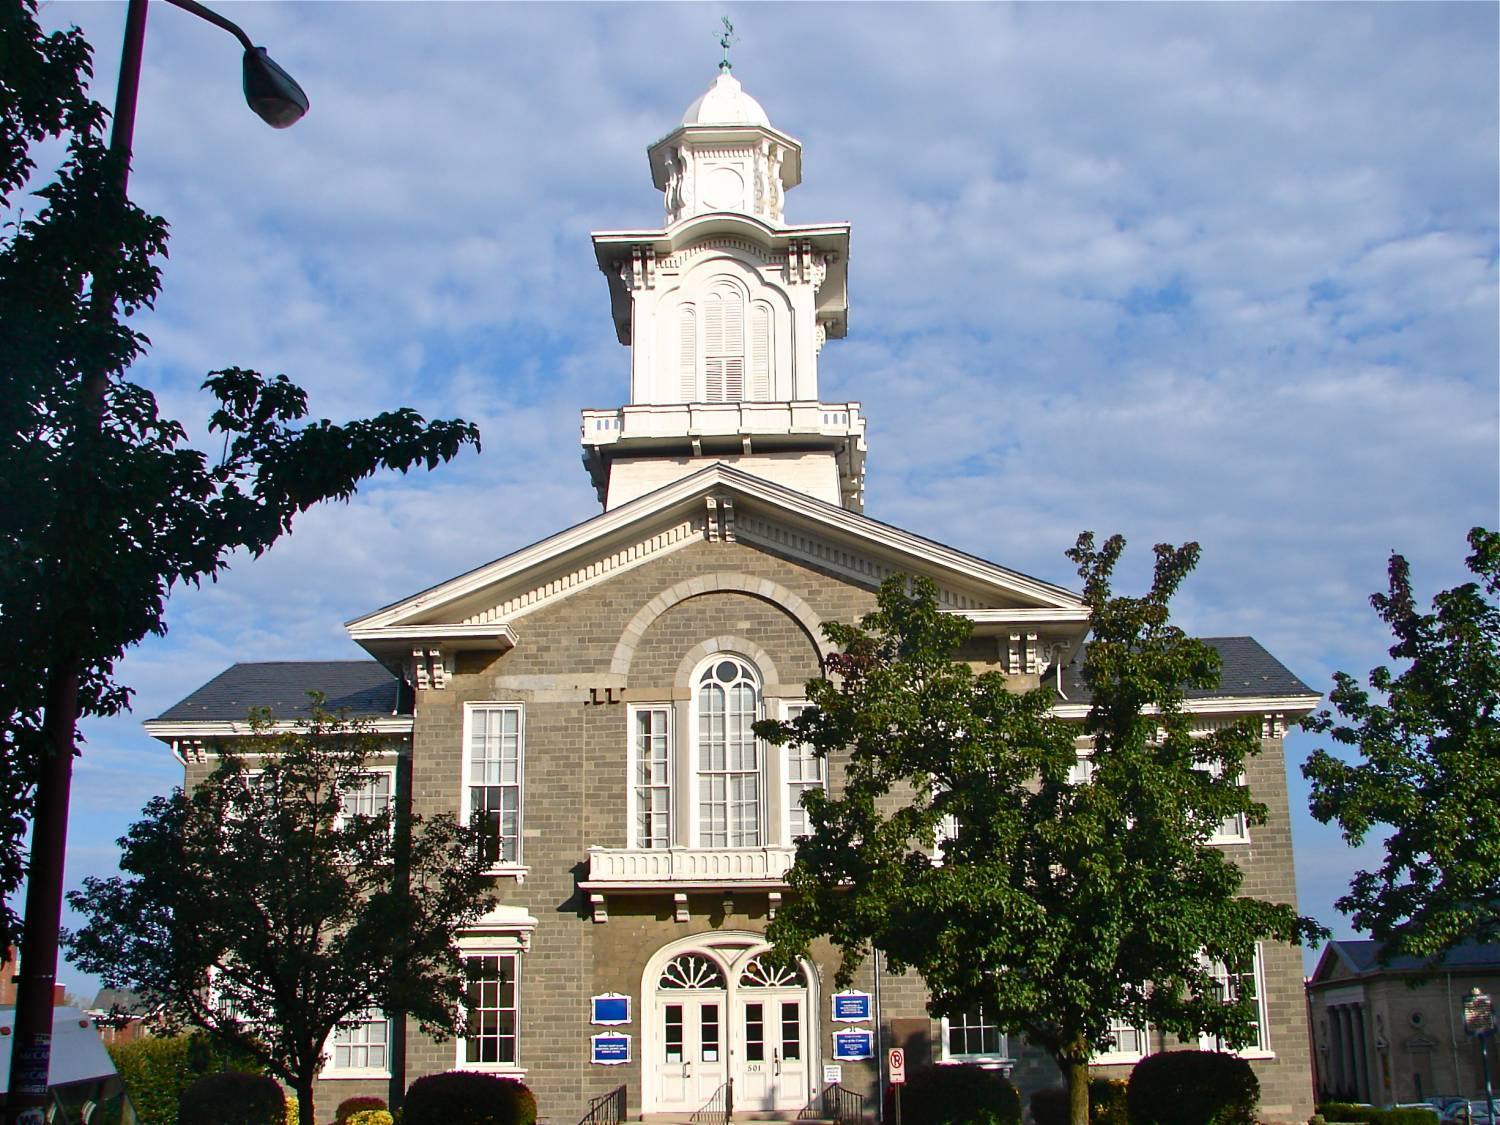 Old Lehigh County Courthouse on the NRHP since September 11, 1981. At 5th and Hamilton Streets, Allentown, Pennsylvania - Photo Credit: Smallbones [CC0], from Wikimedia Commons